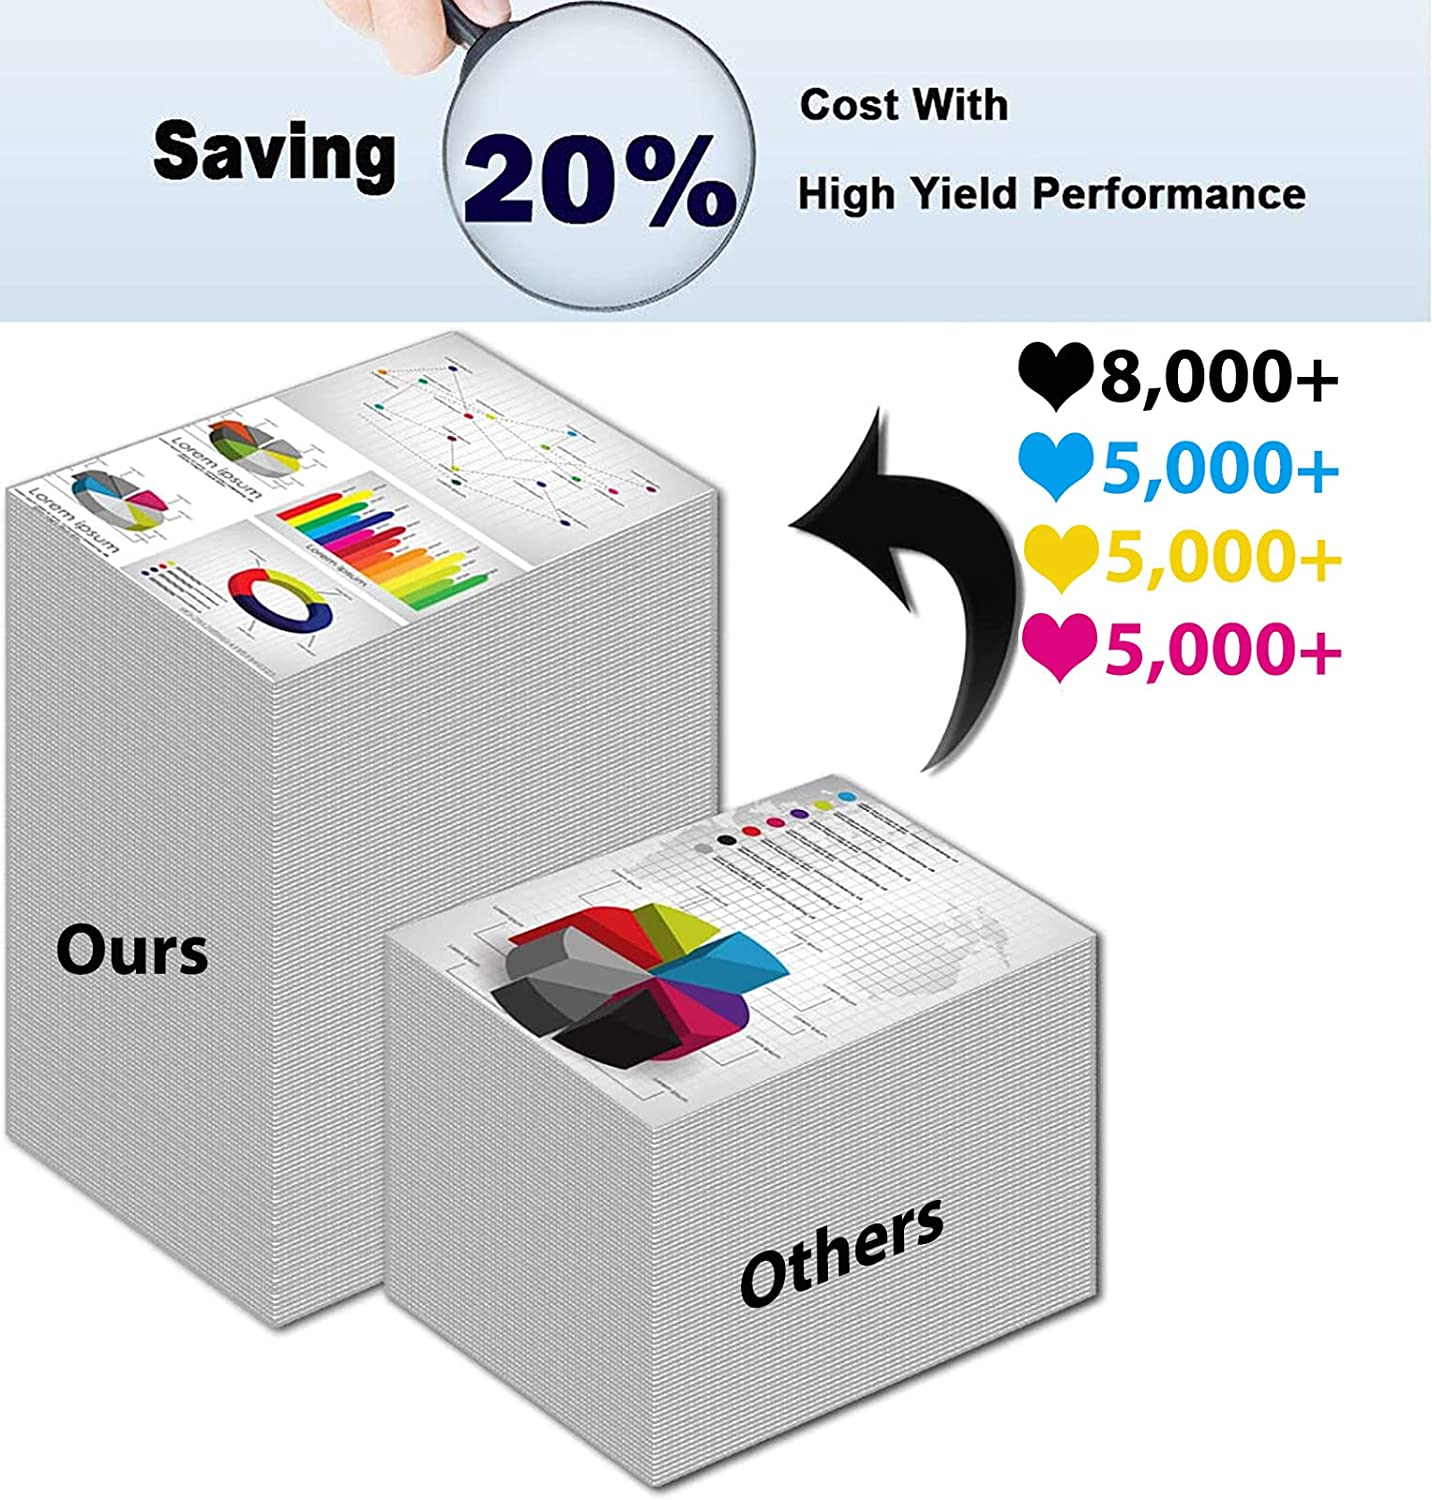 1-Pack (Magenta) Compatible High Yield C5222MS Laser Printer Toner Cartridge Used for Lexmark C530DN, C532DN, C532N, C534DN, C534DTN, C534N Printer